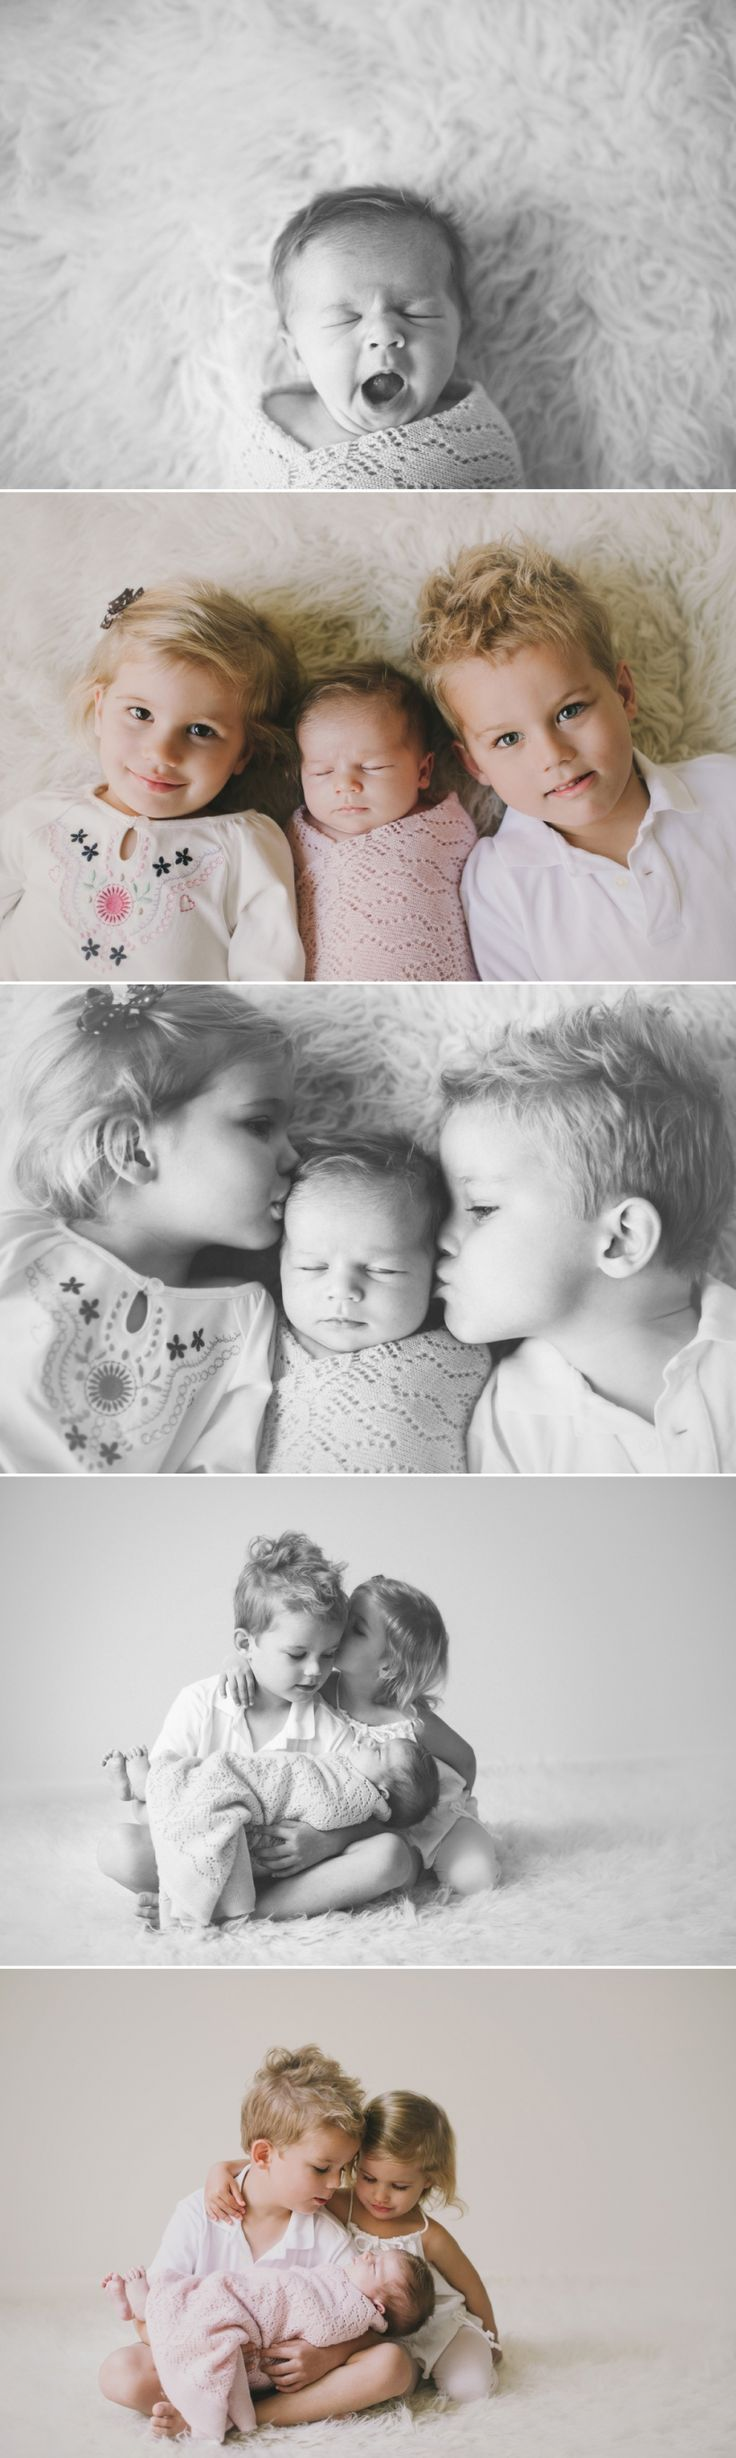 Cute newborn photo shoot with older siblings included. I like these pose ideas, so cute. Newborn photography | children's photography | family photos